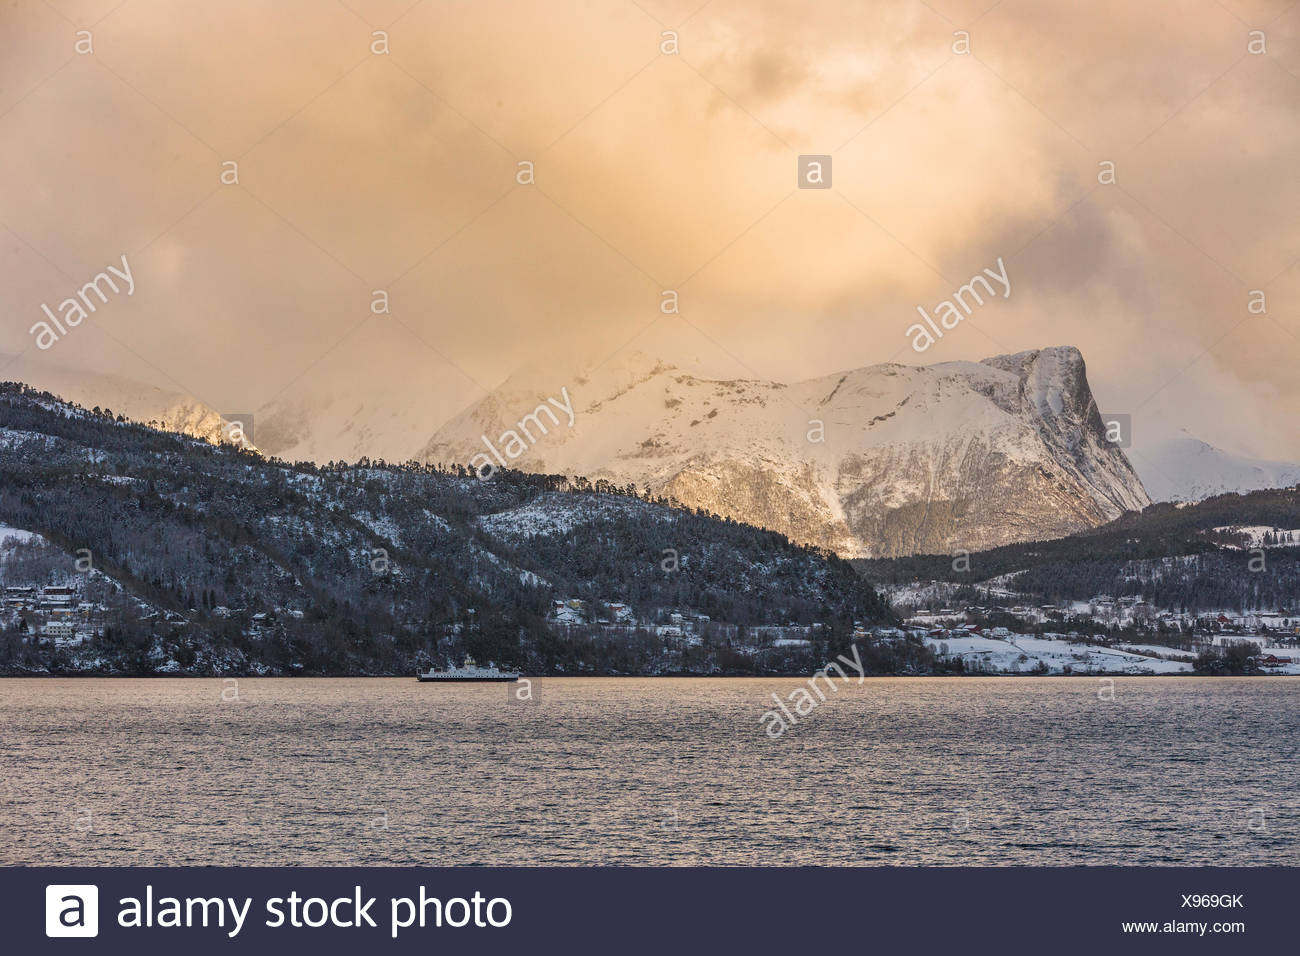 The Volda fjord at sunset in winter - Stock Image